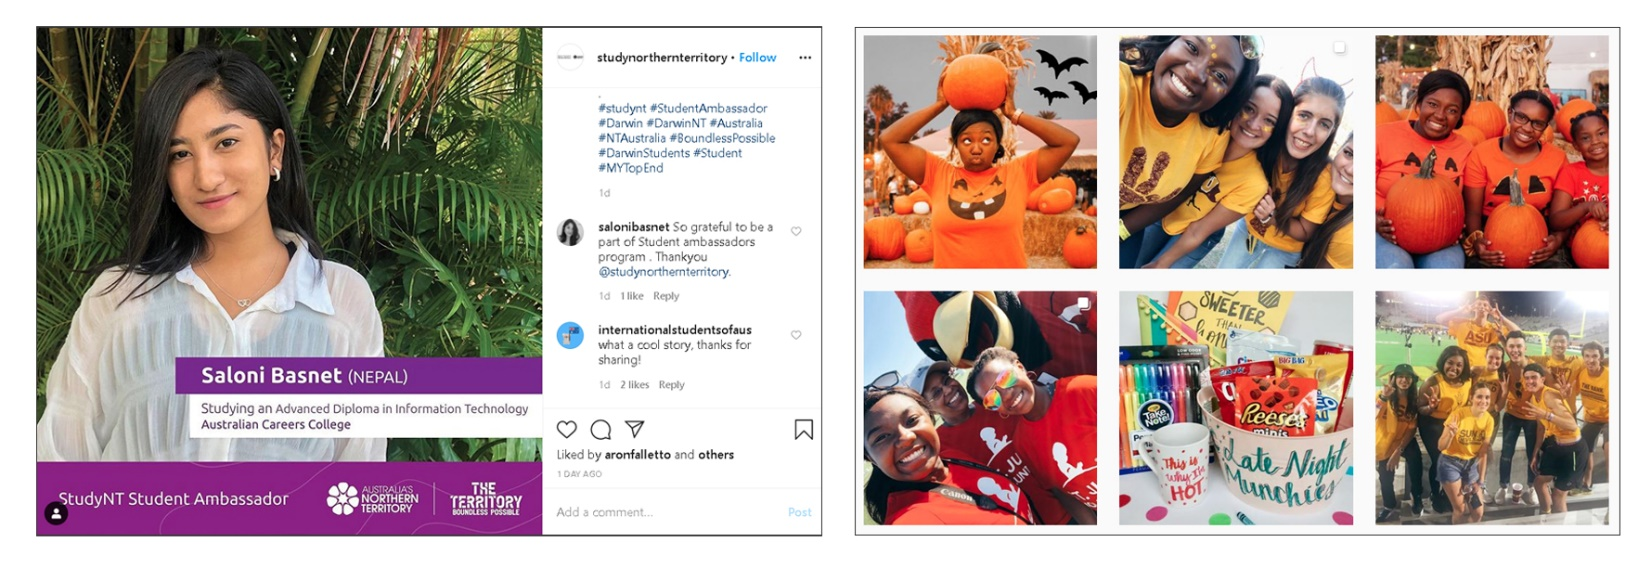 Influencer marketing is a higher education trend in 2020